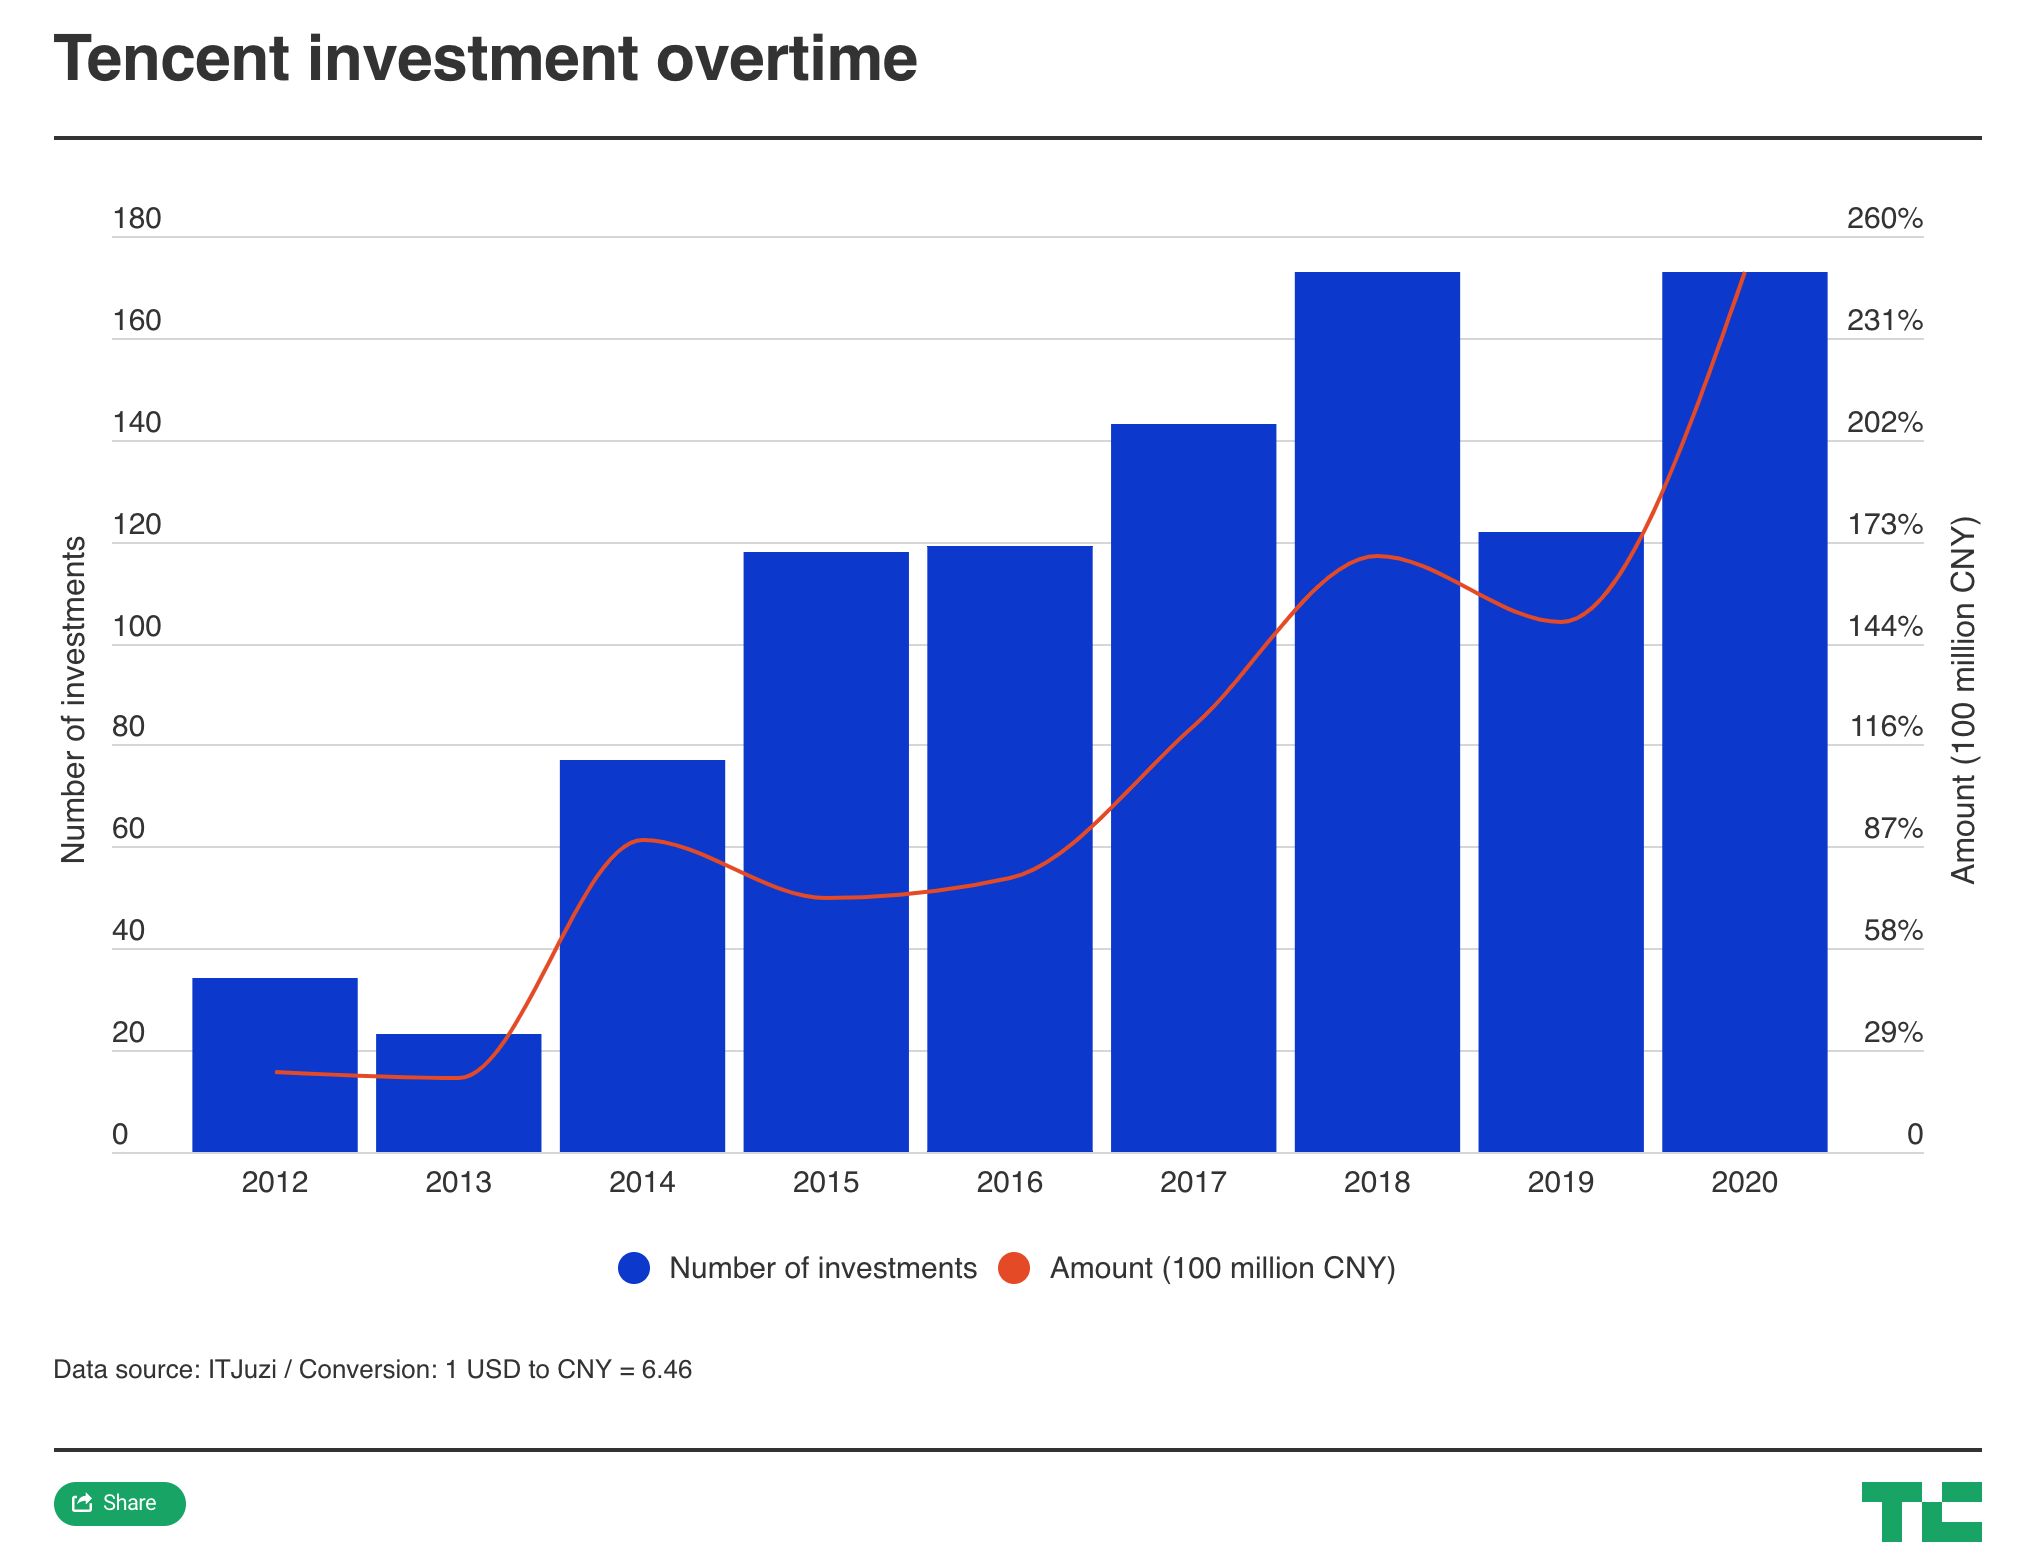 Tencent investment stays on game in 2020